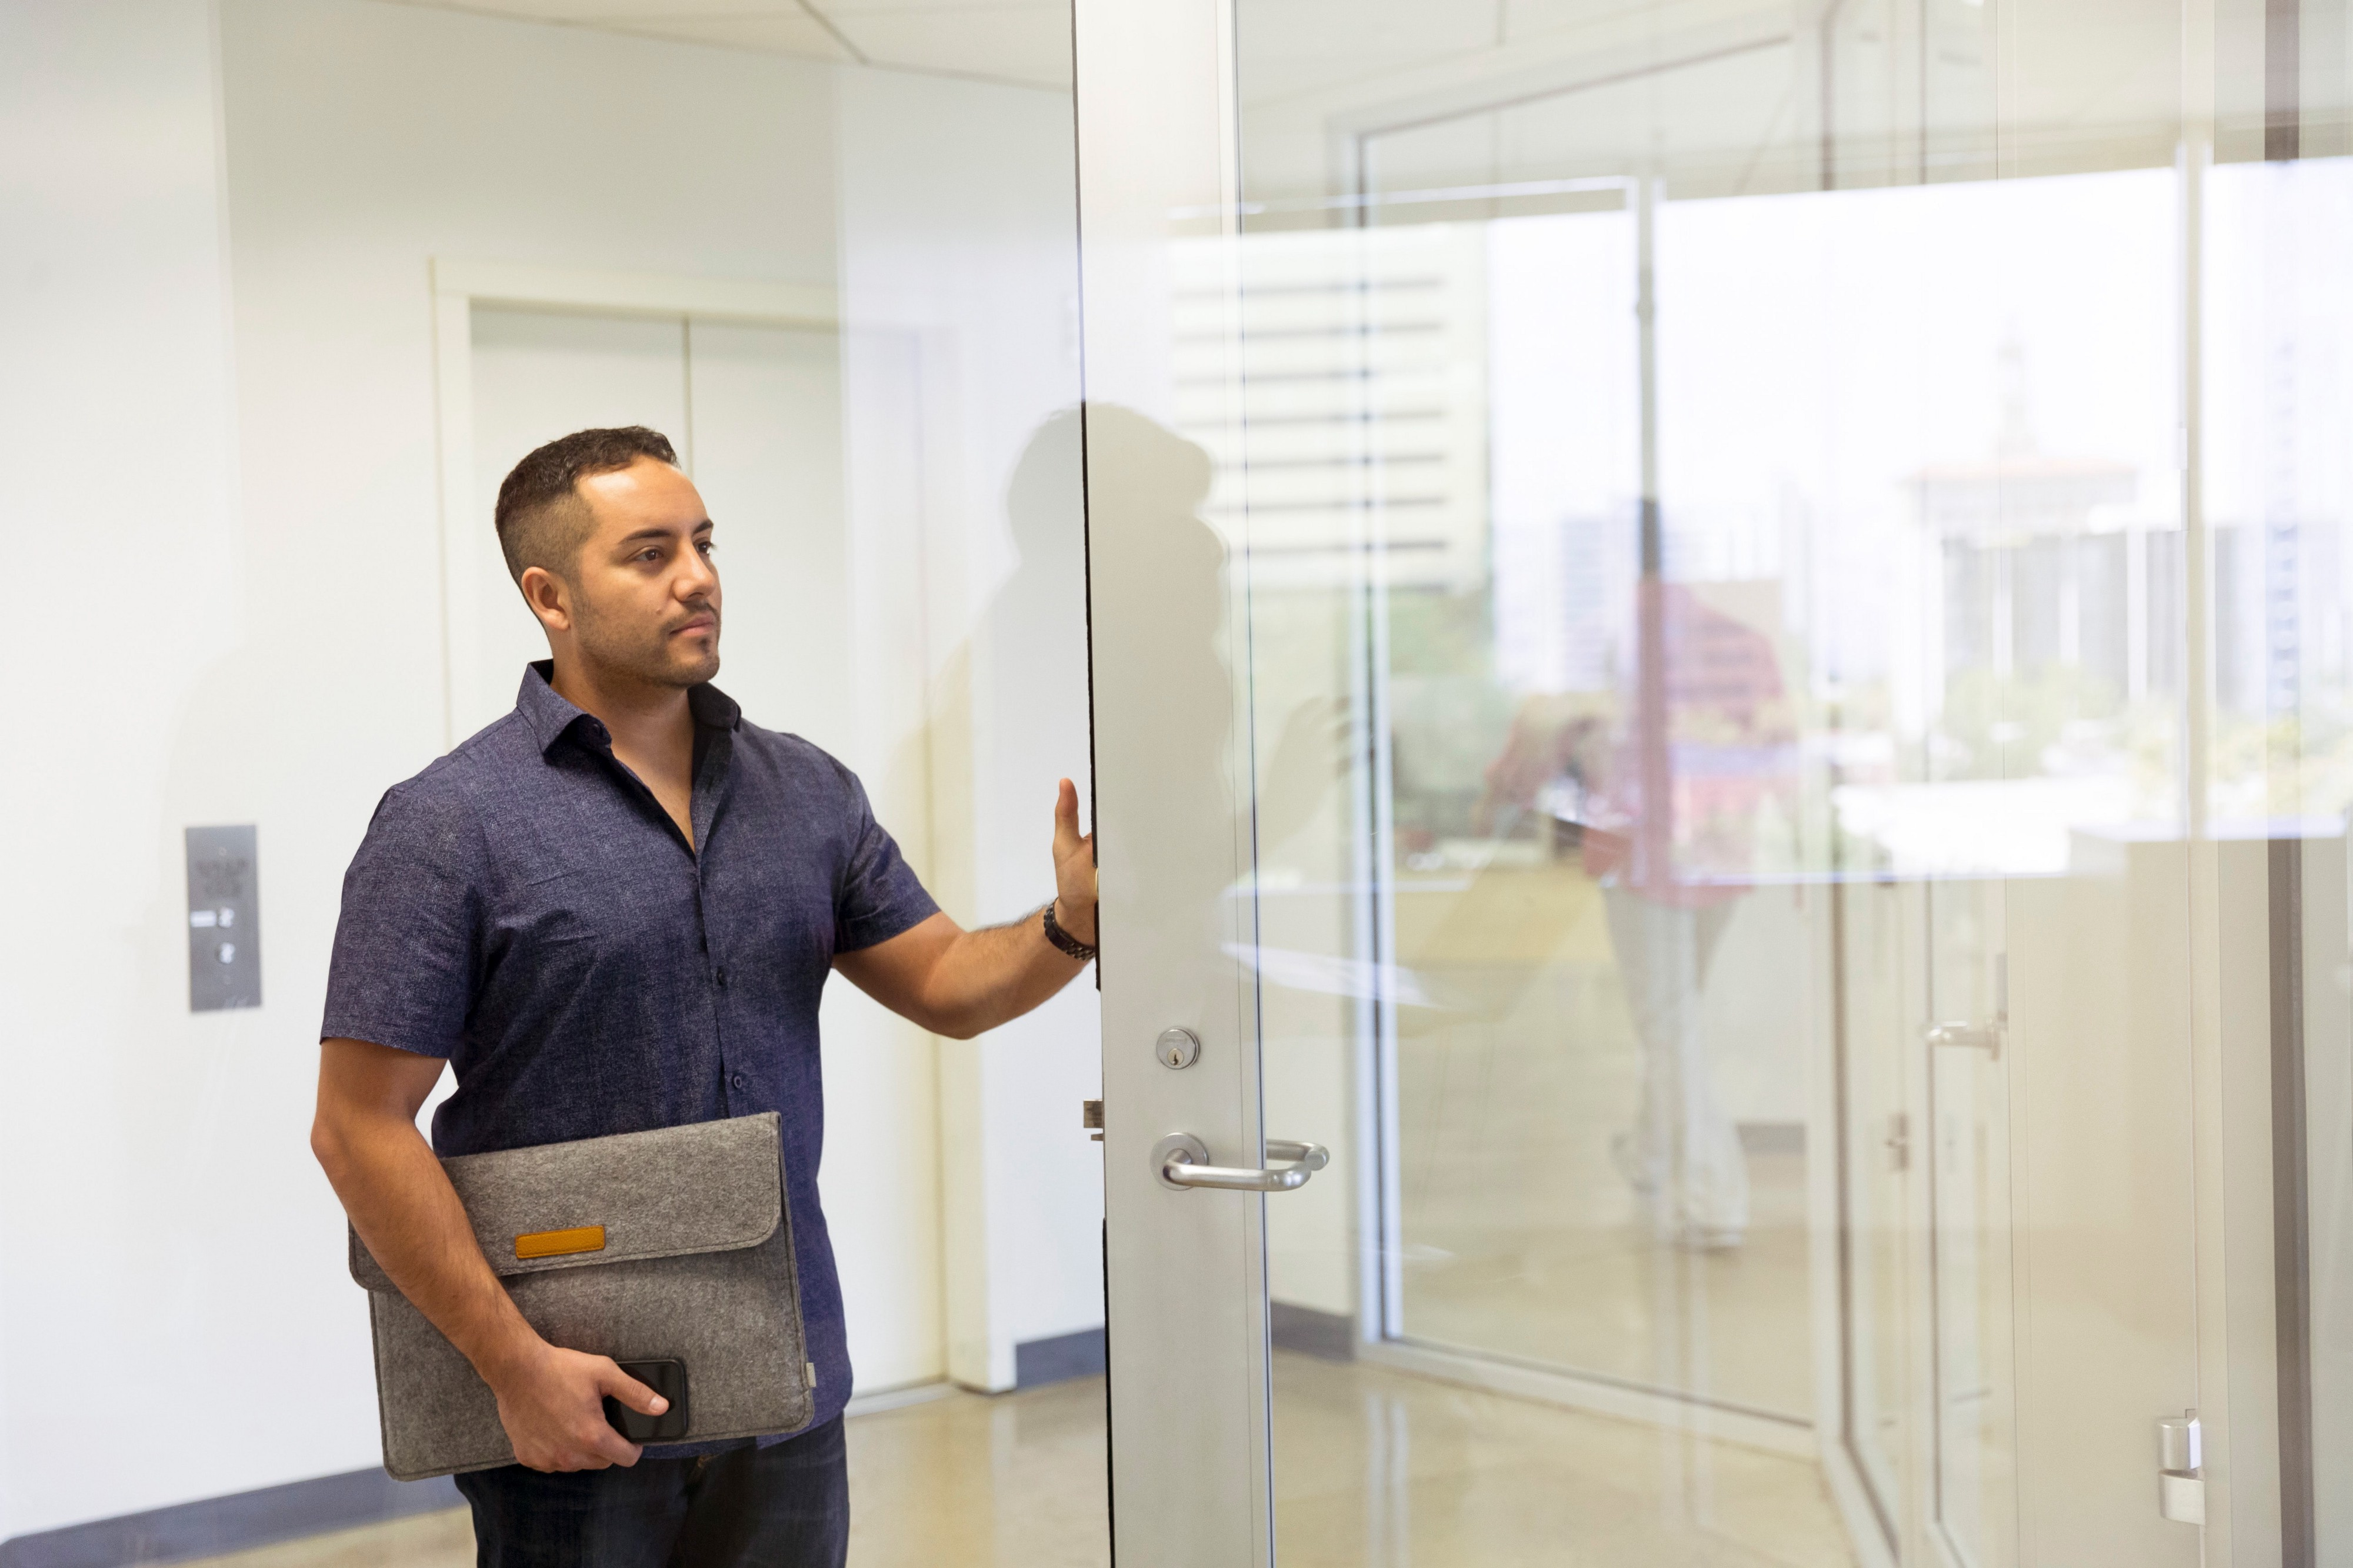 Person, dressed in a button up shirt, carrying laptop sleeve, holding a glass door open.